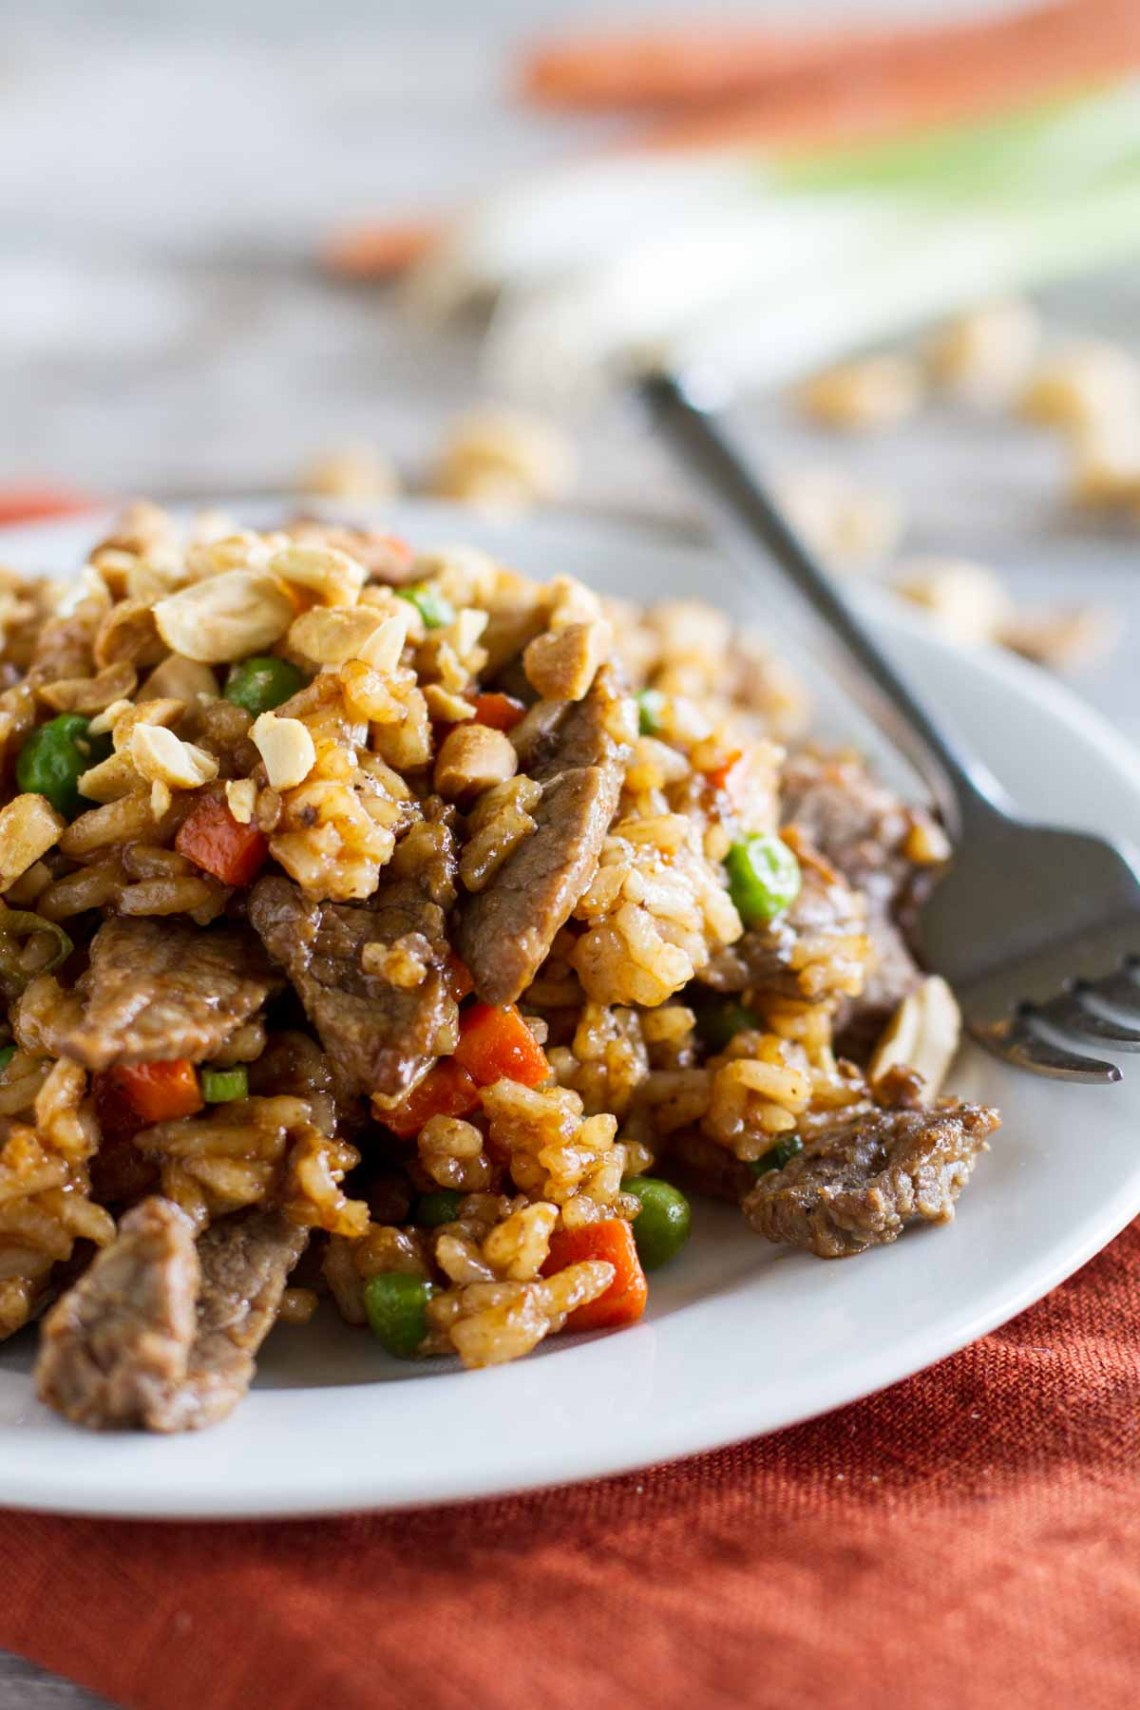 Asian Stir Fry Recipe - Rice and Beef Stir Fry - Taste and ...